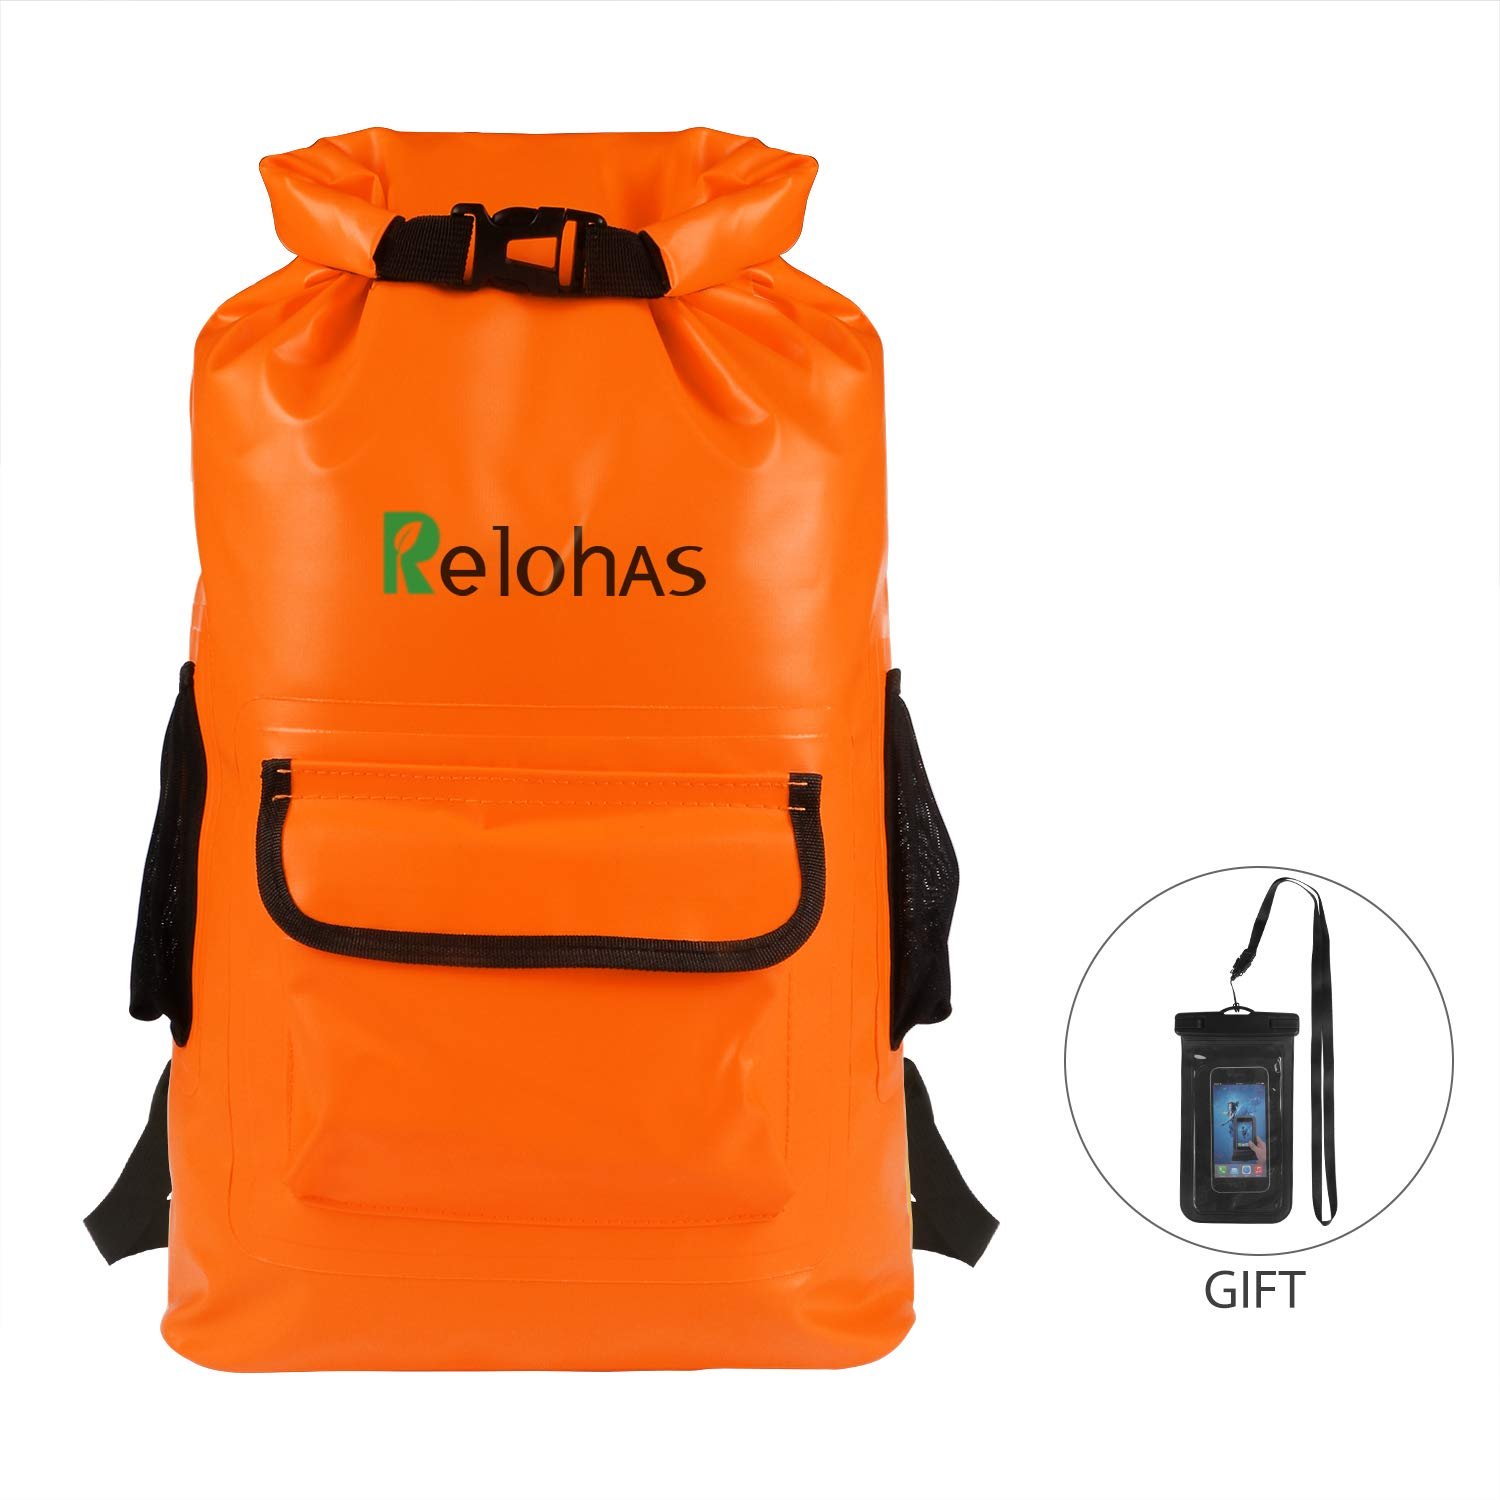 Waterproof Dry Bag, Relohas 22L Lightweight Dry Sack with Front Pocket and 2 Side Mesh Pockets Keep Gear Dry for Hiking, Camping, Rafting, Boating, Kayaking and Fishing(Waterproof Phone Case Bonus) Colohas